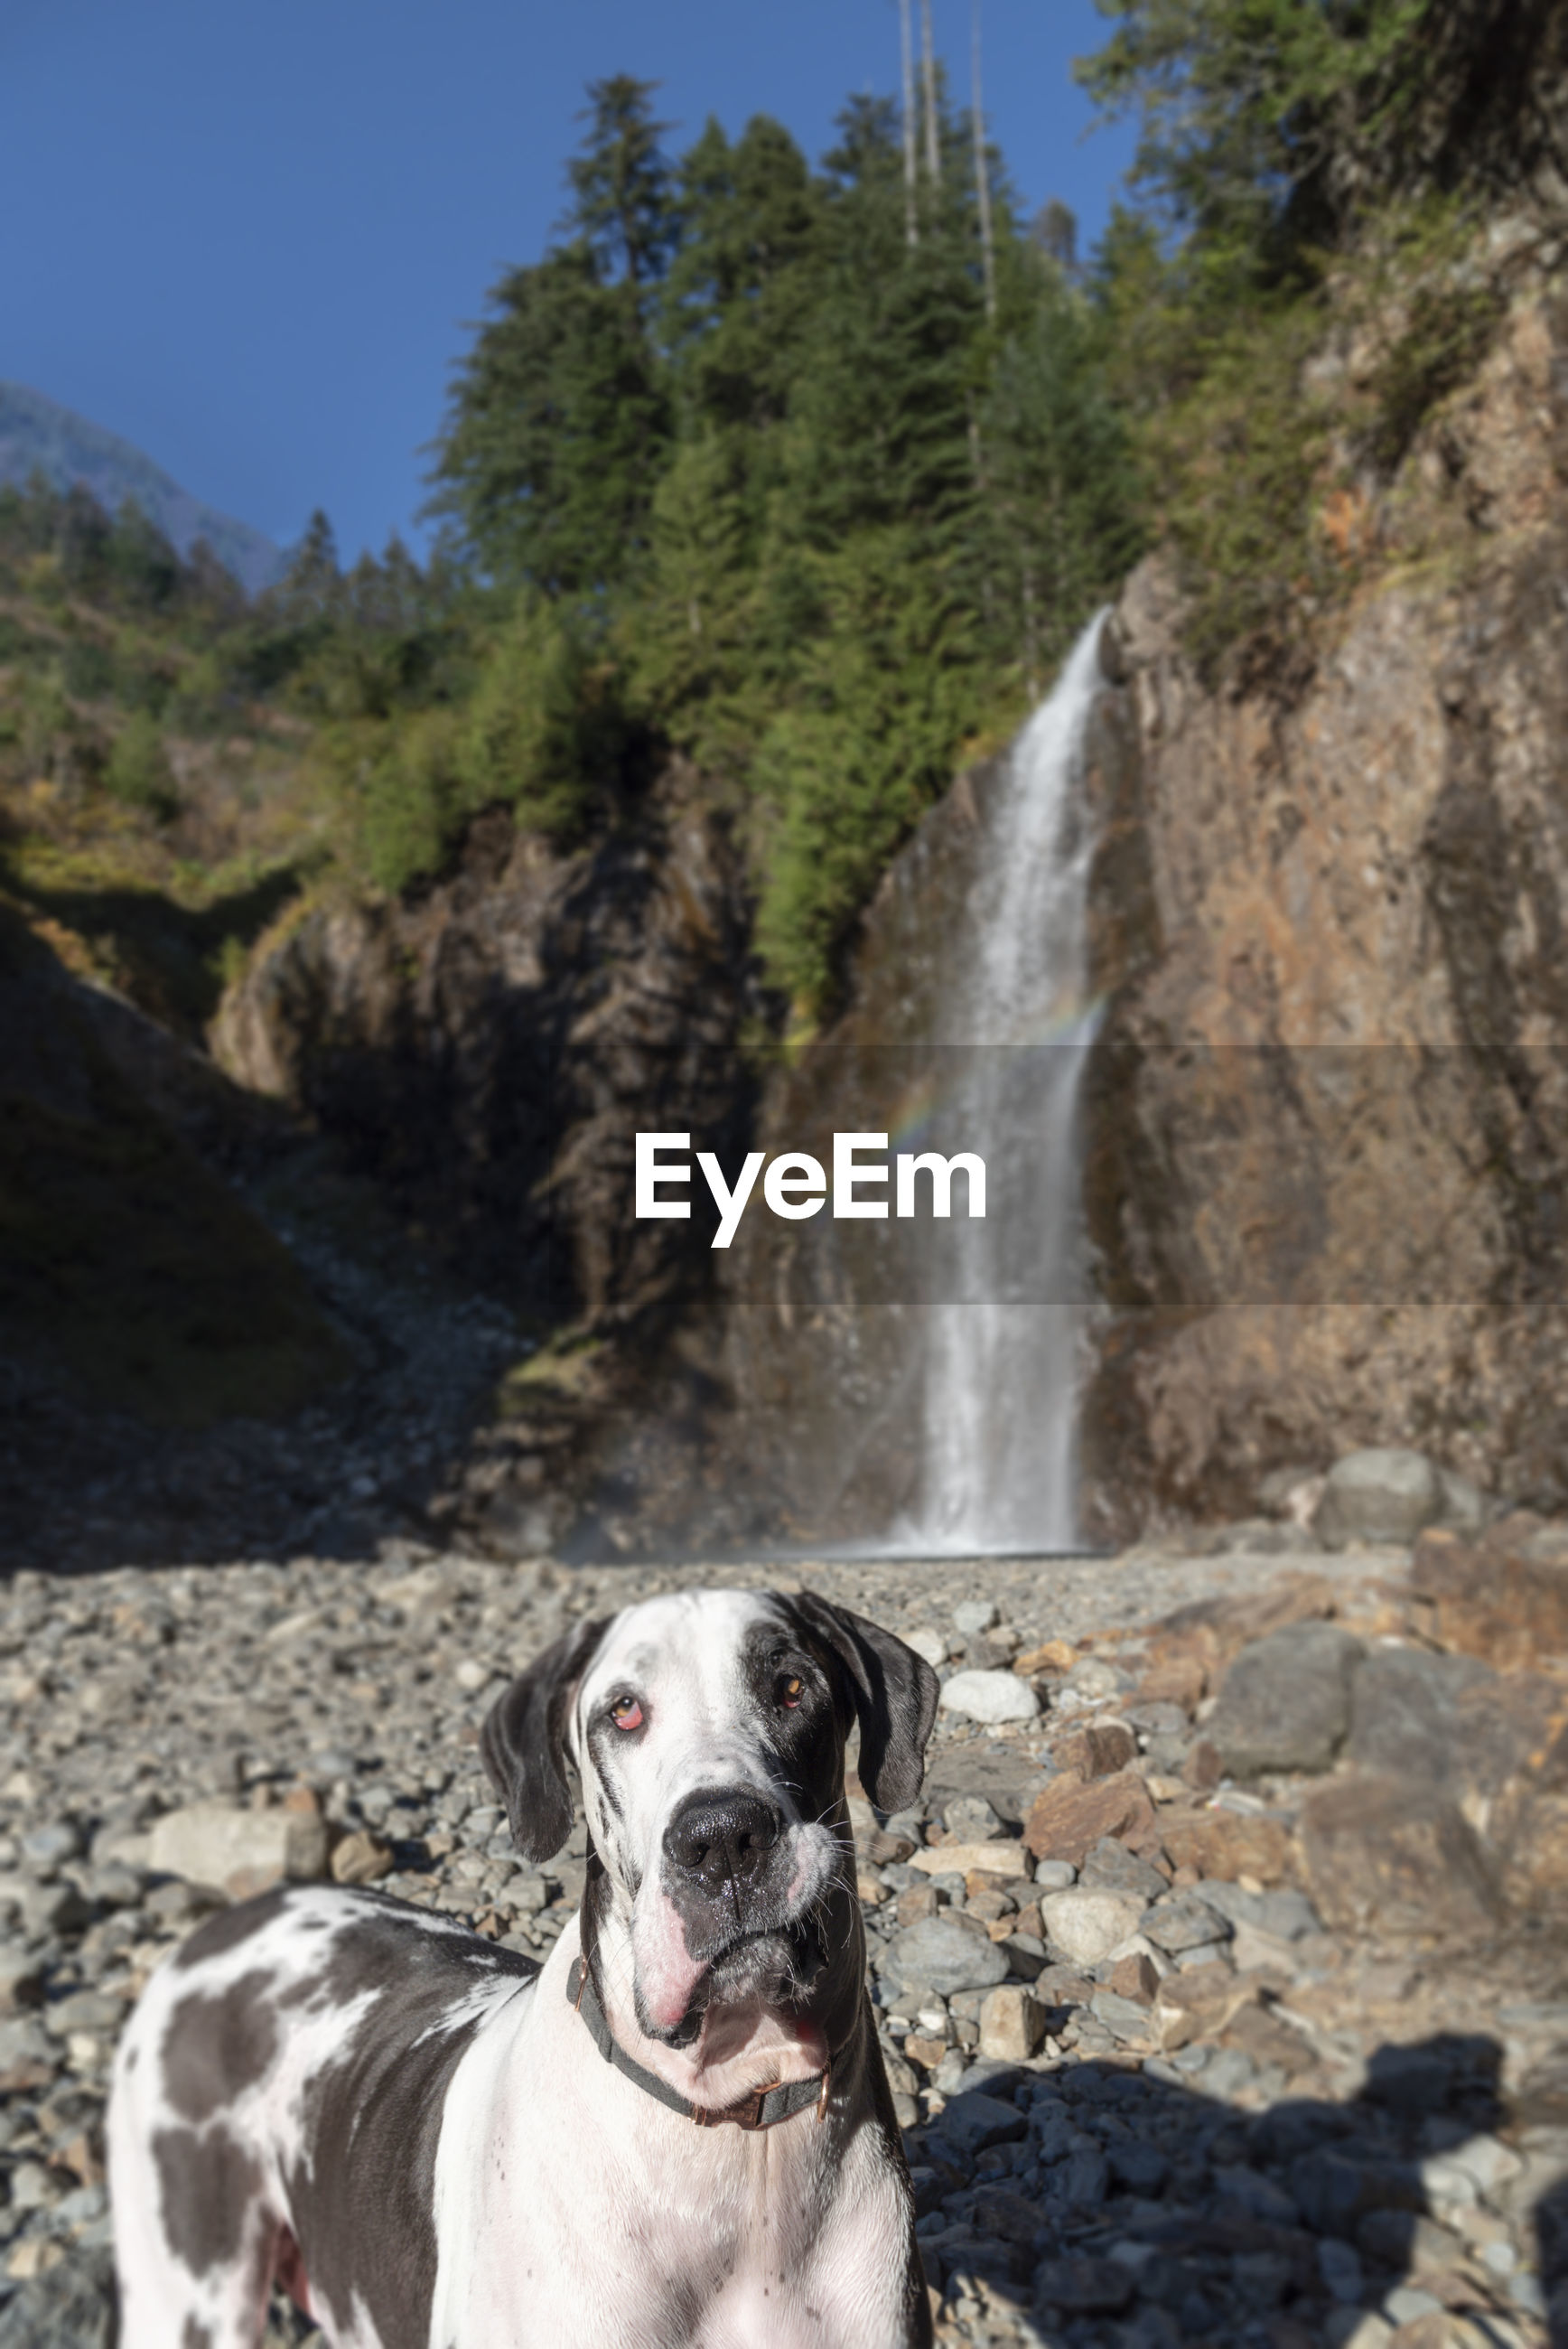 Portrait of dog against waterfall in forest